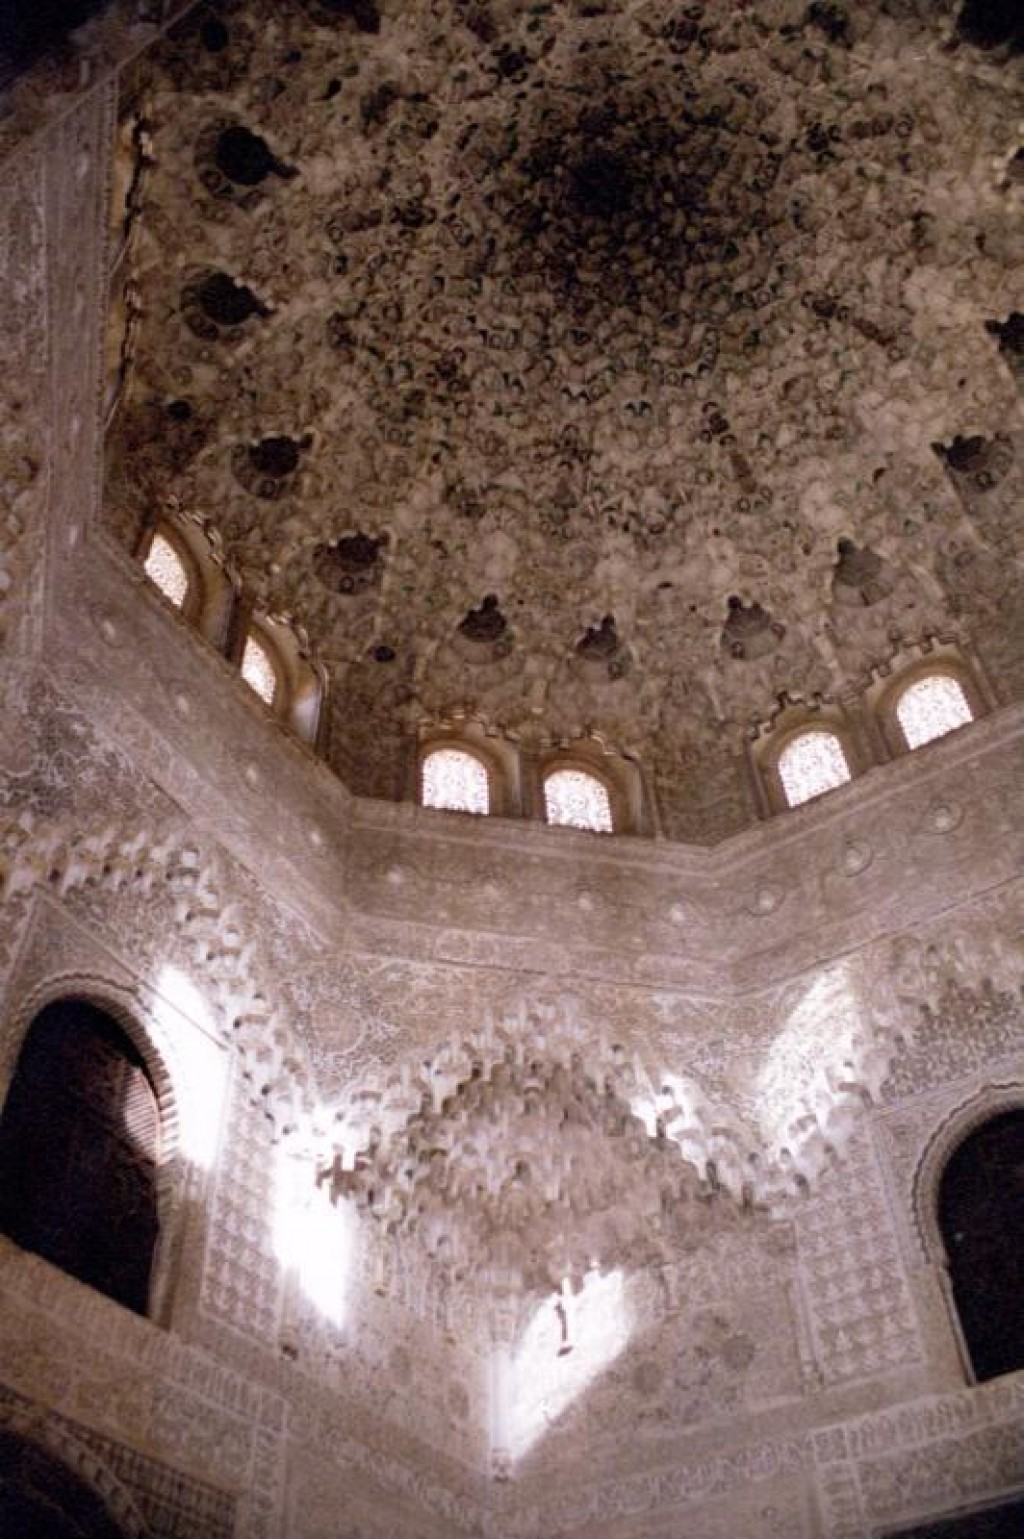 It is impossible to accurately capture the Moorish architecture.  It was unlike any other buildings we'd seen.